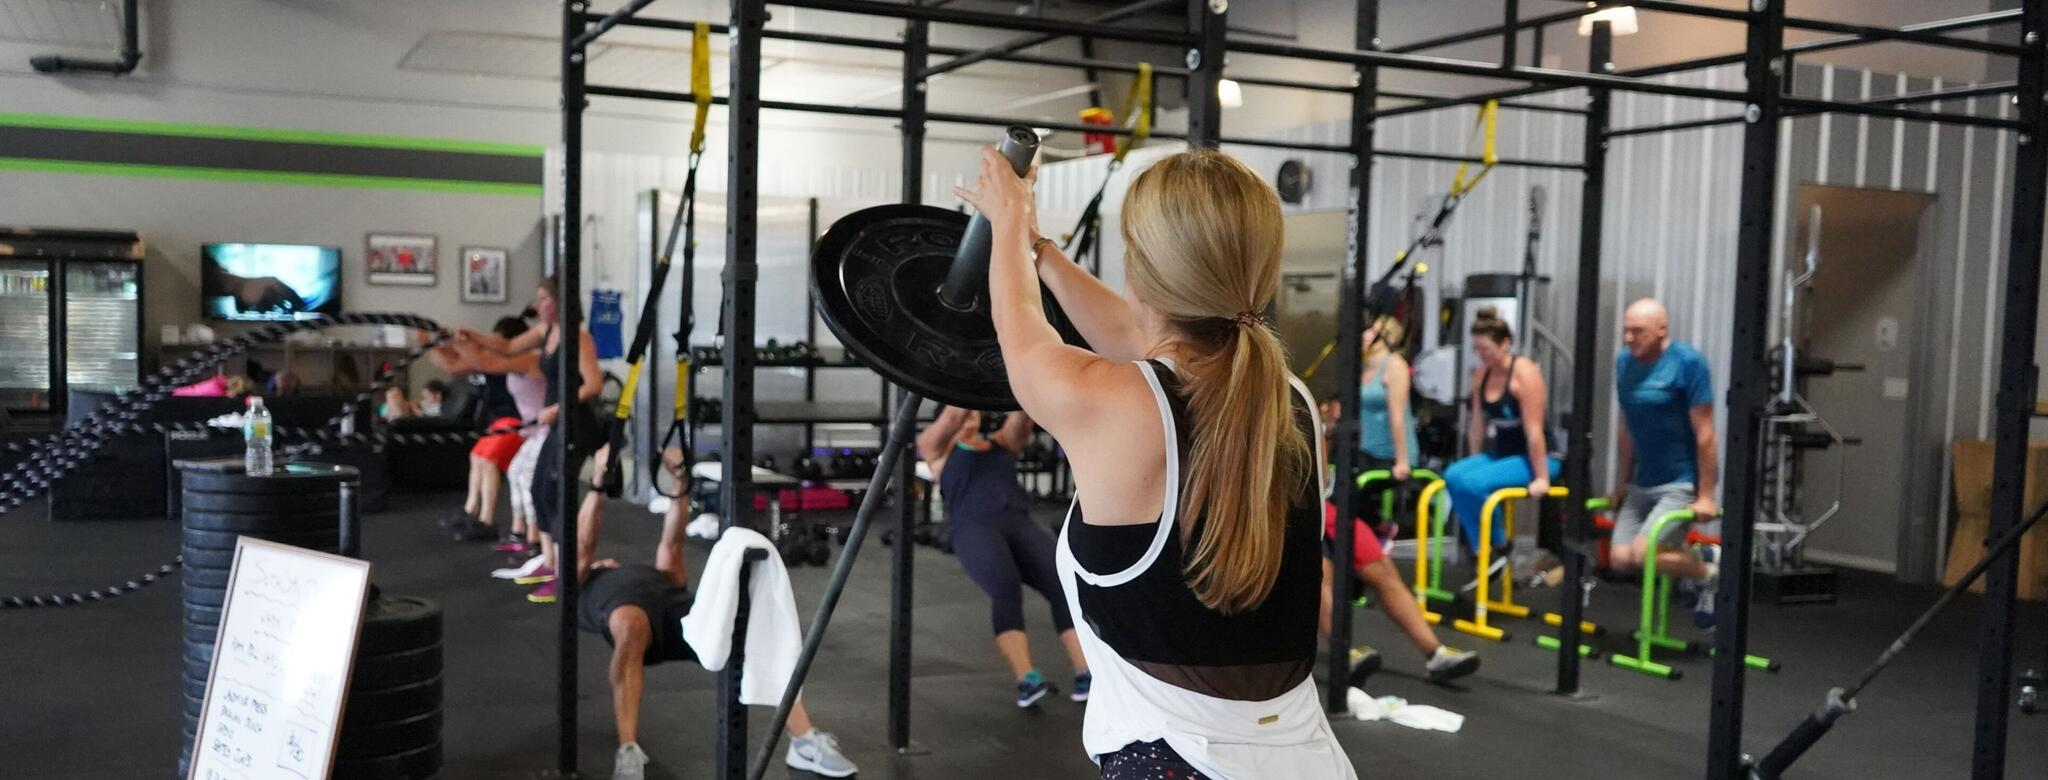 Woman exercising with heavy weights  in a high-intensity fitness studio